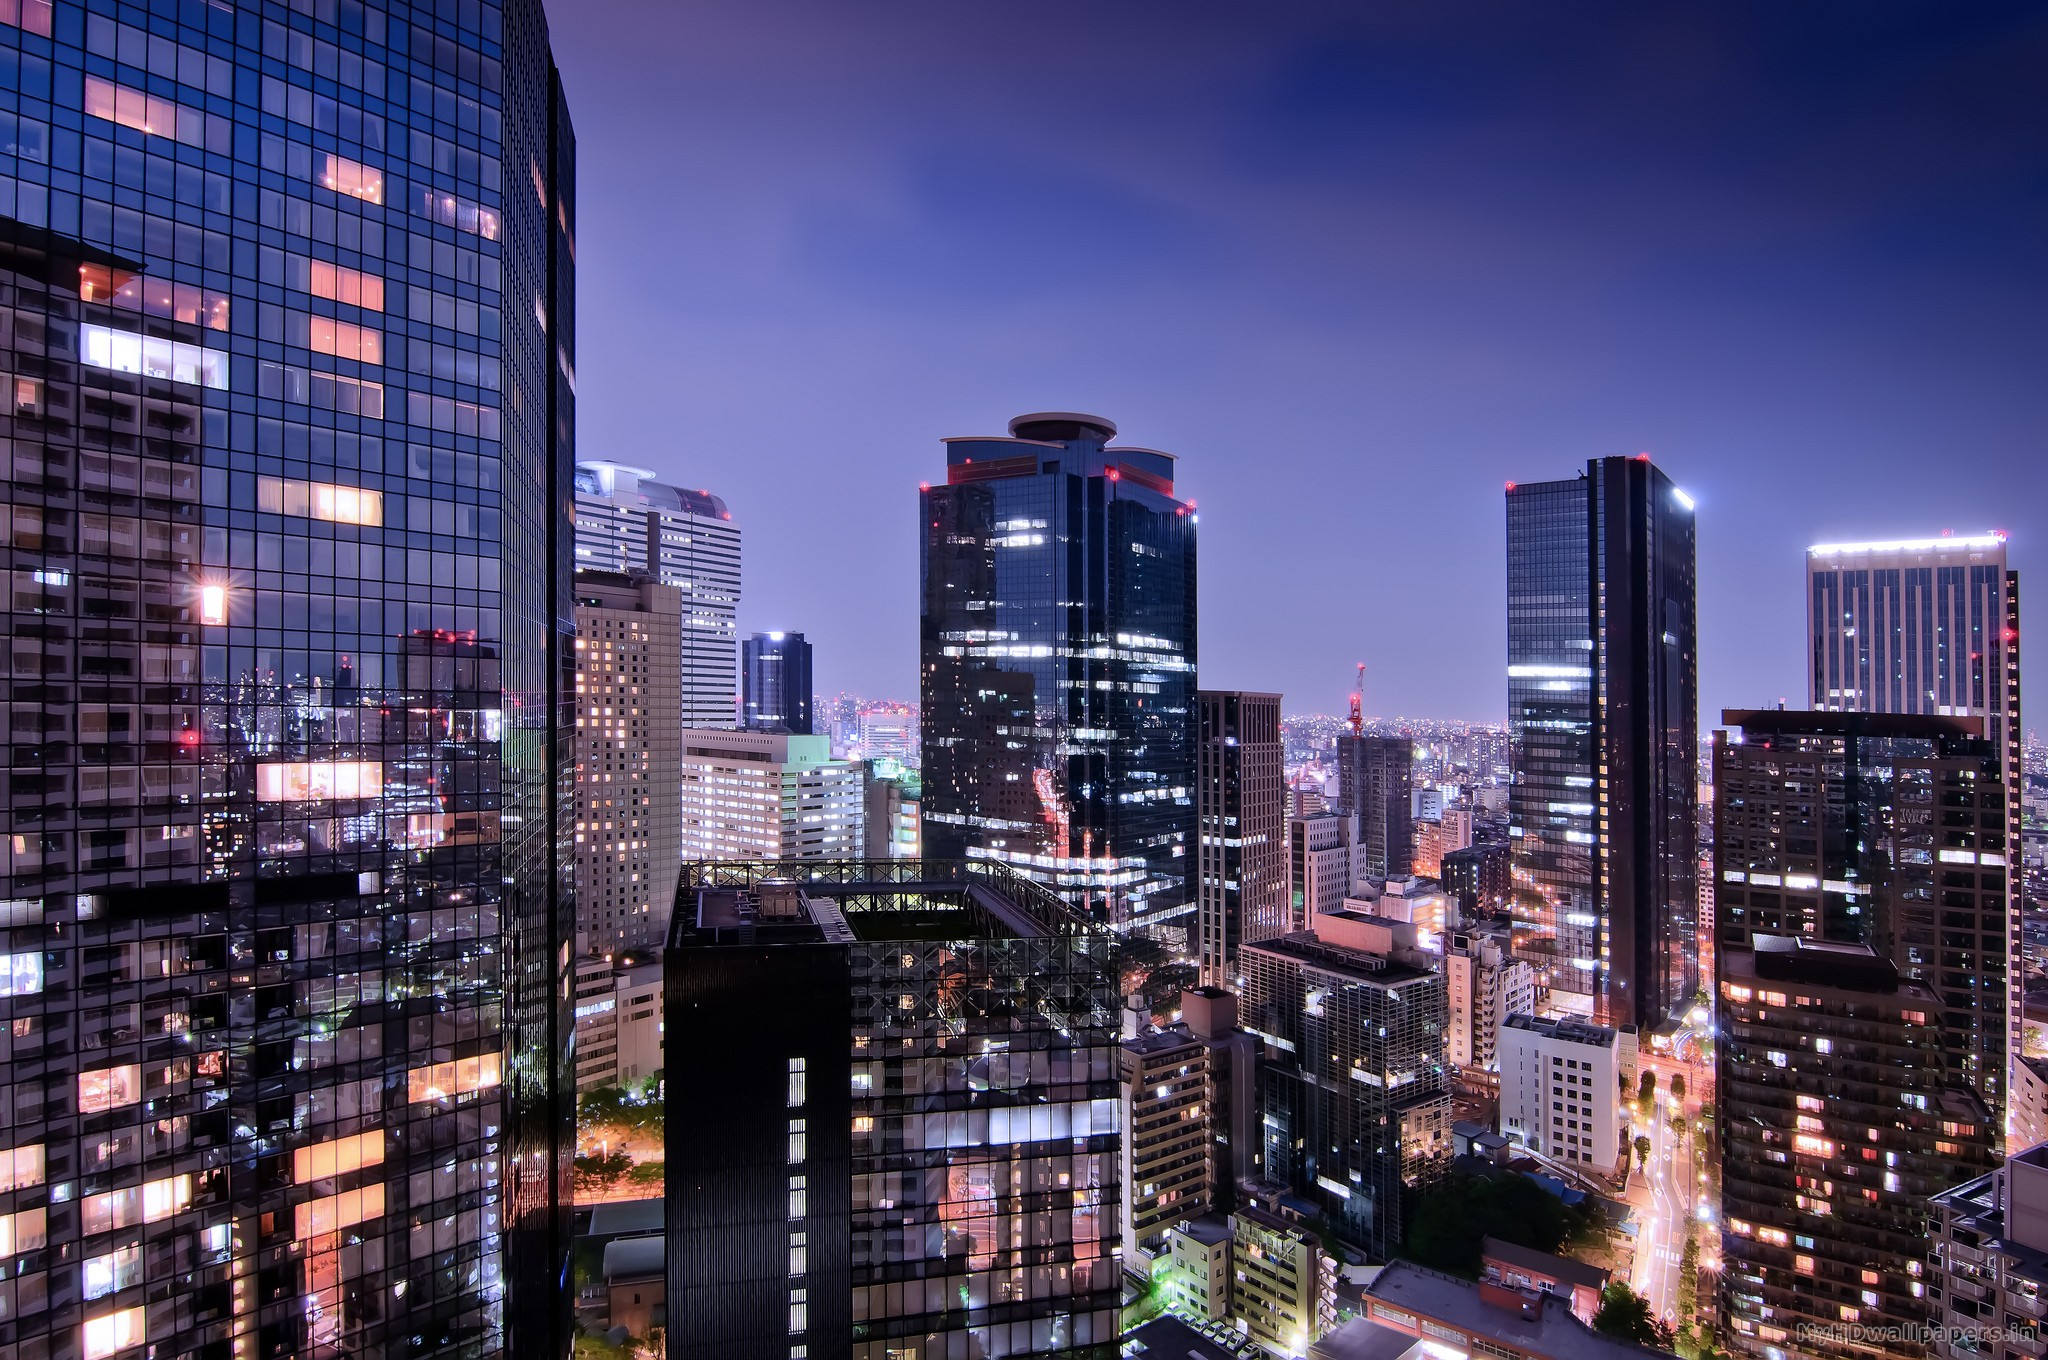 Tokyo City HD Wallpapers MyHDwallpapersin in high quality wallpaper 2048x1360